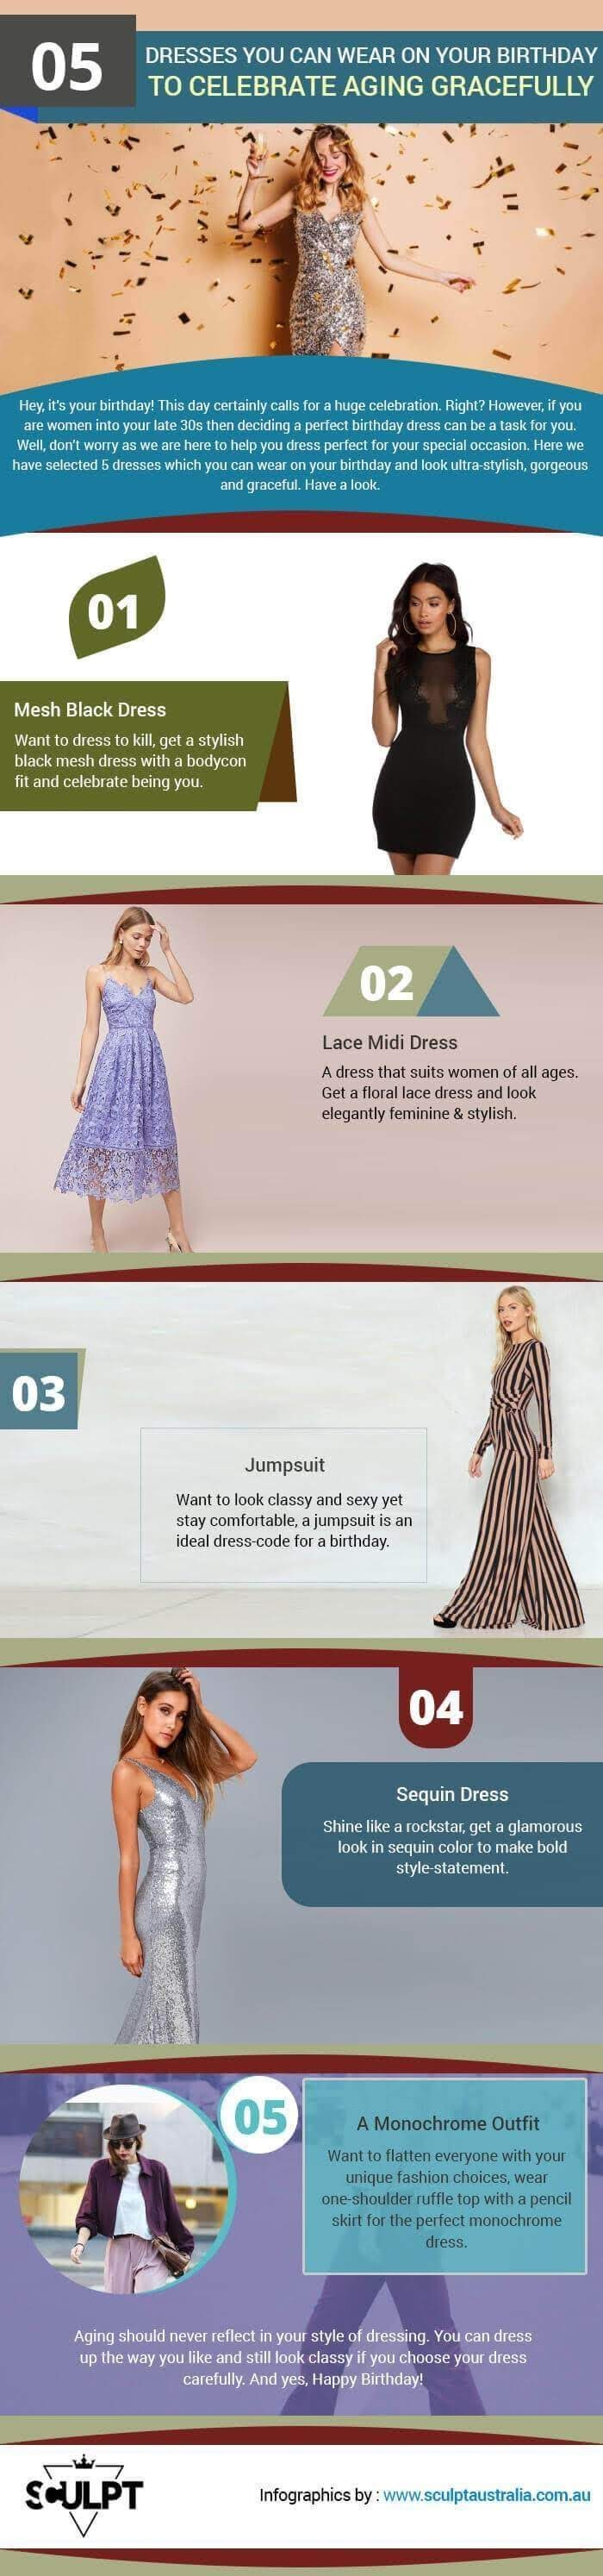 5 Dresses To Wear On Your Birthday #infographic